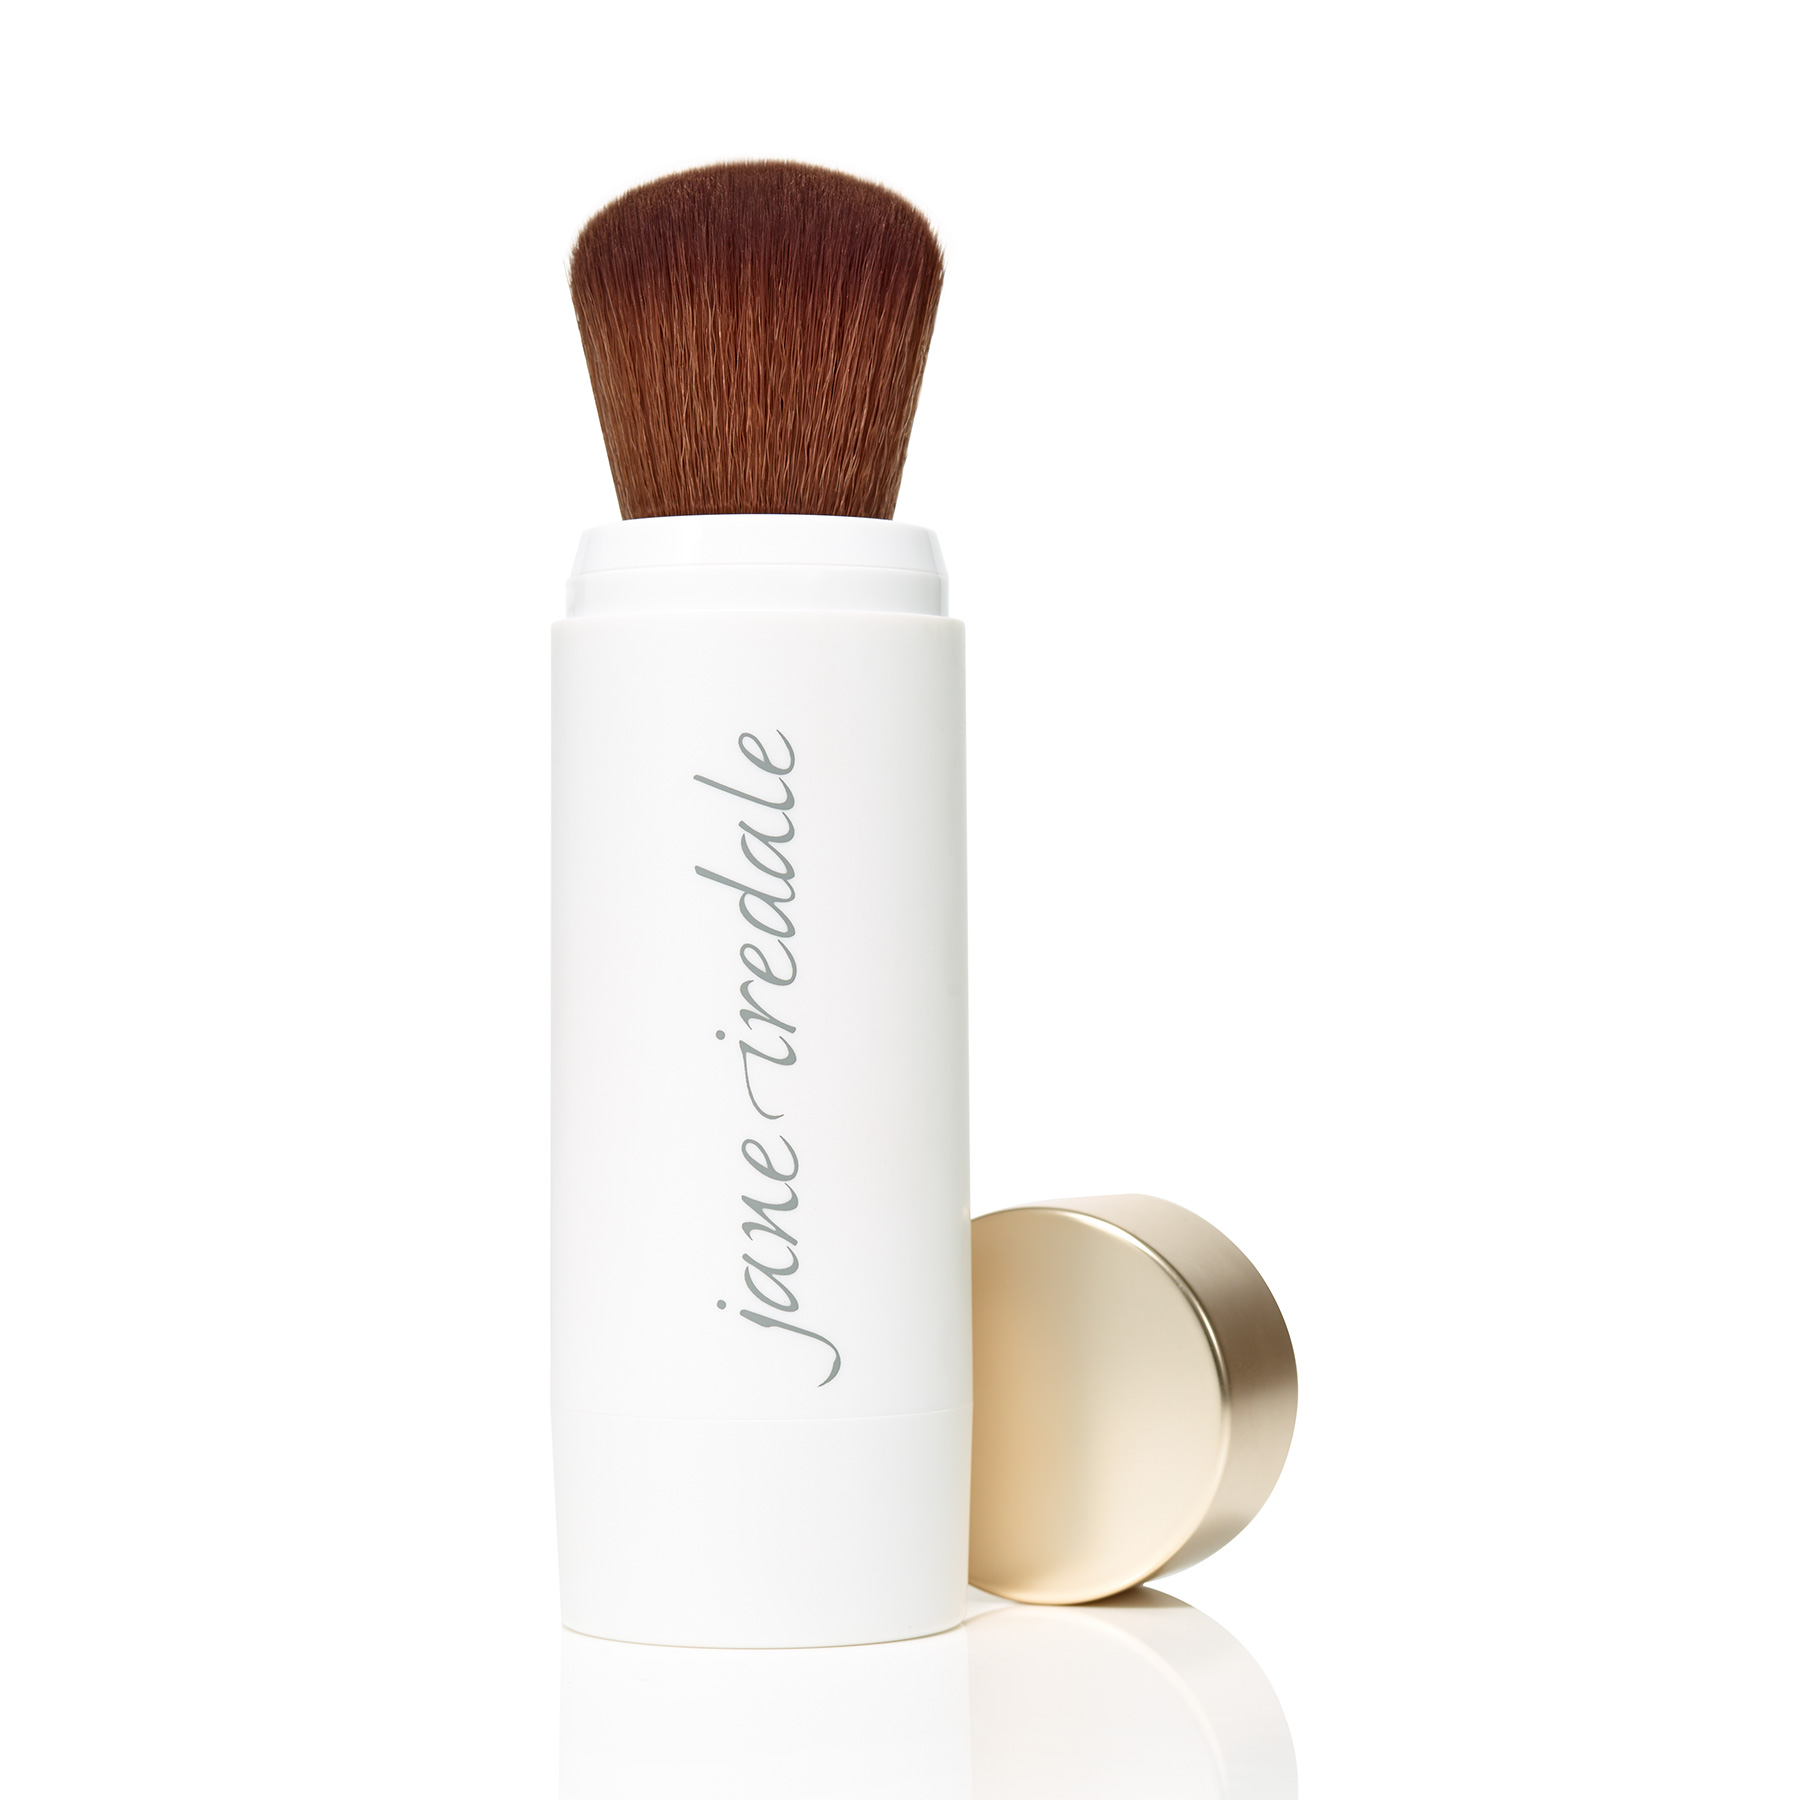 Healthy Summer Skincare: Jane Iredale Powder-Me SPF 30 Dry Sunscreen